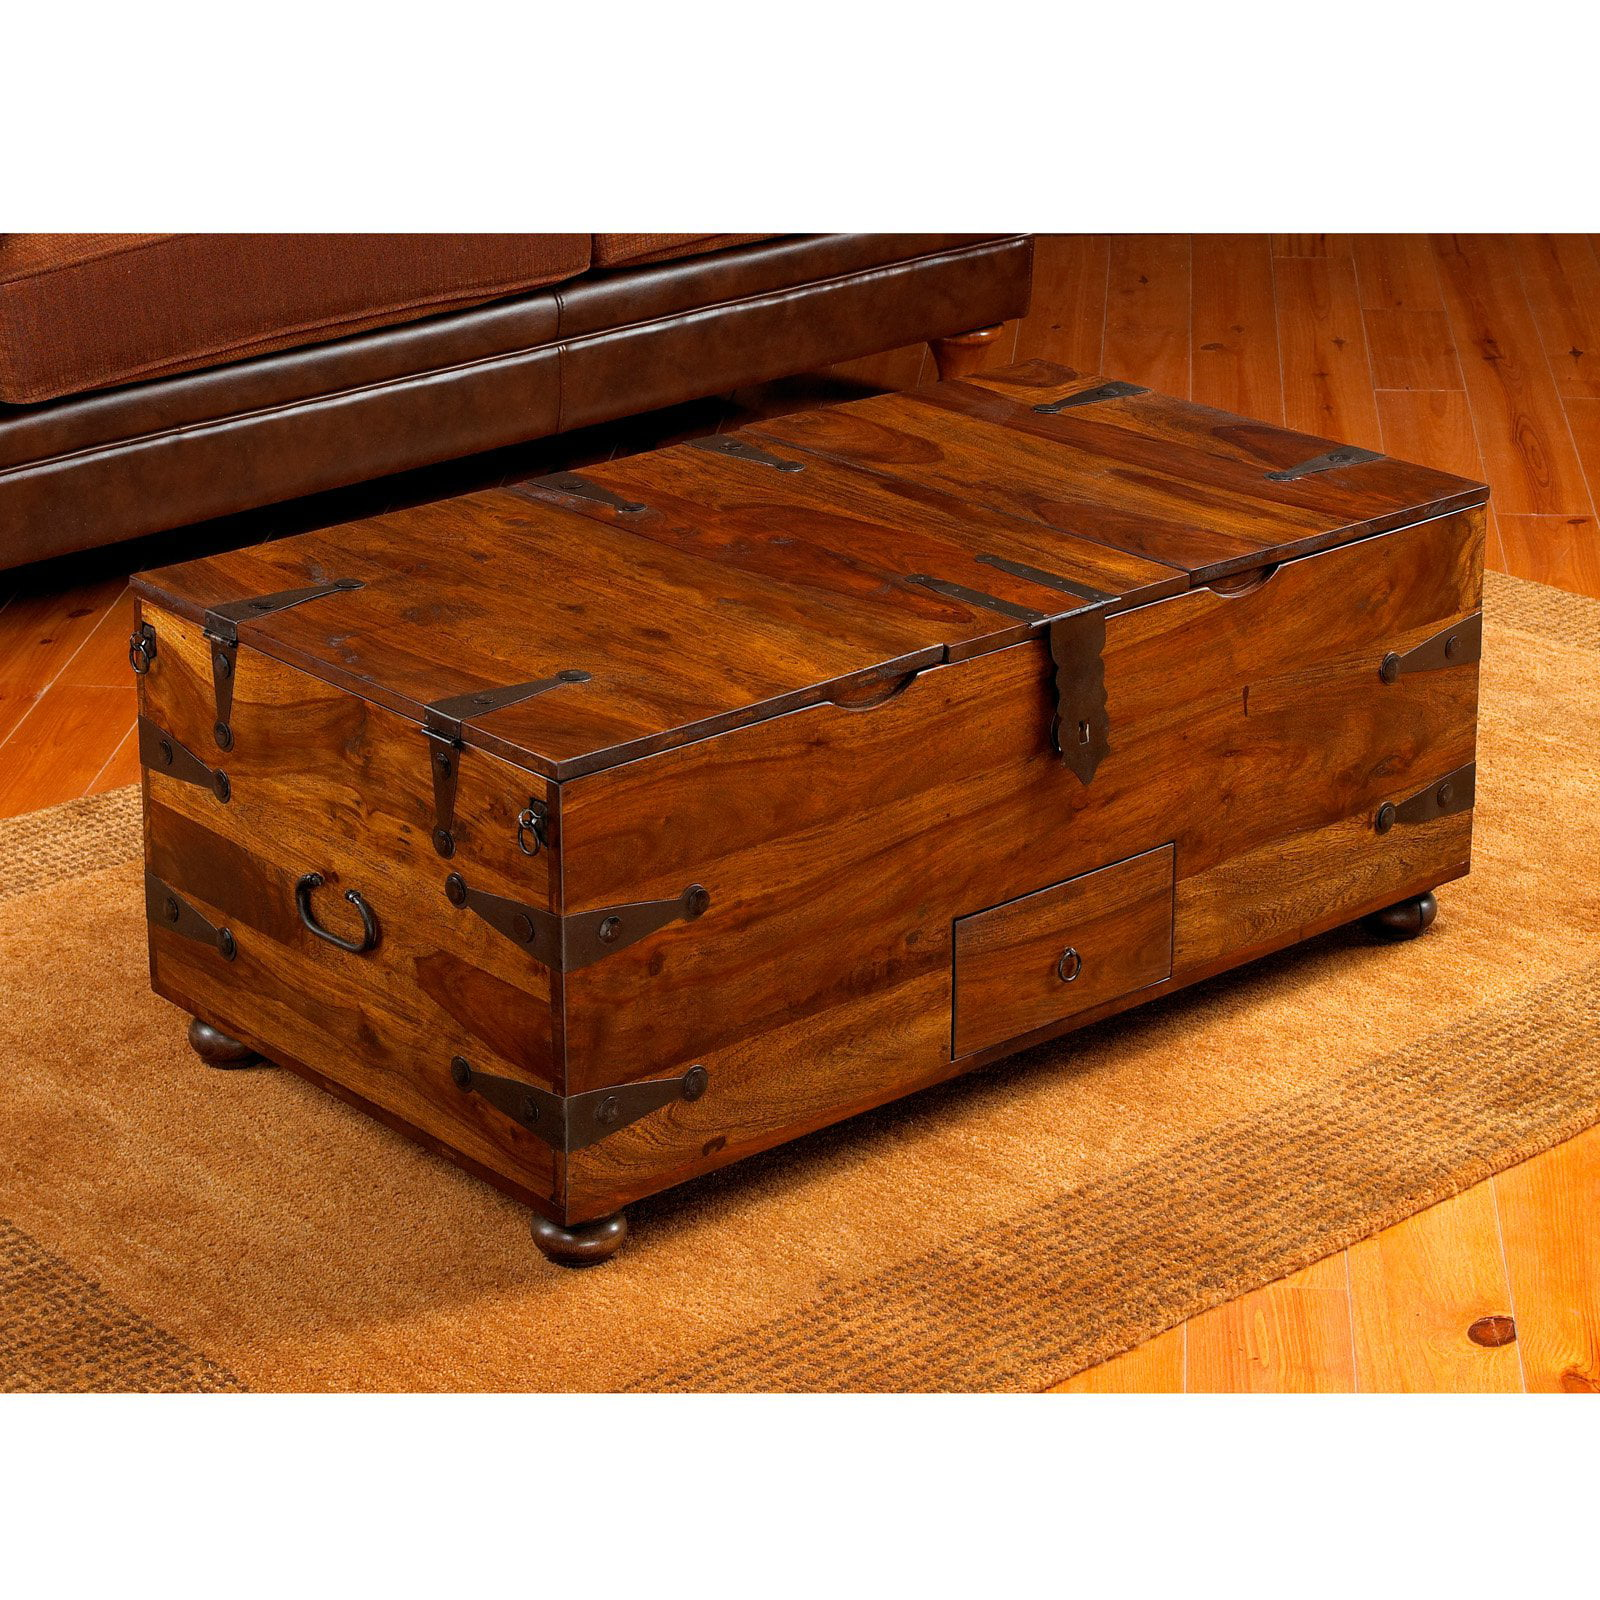 William Sheppee Thakat Trunk Coffee Table by William Sheppee USA Ltd